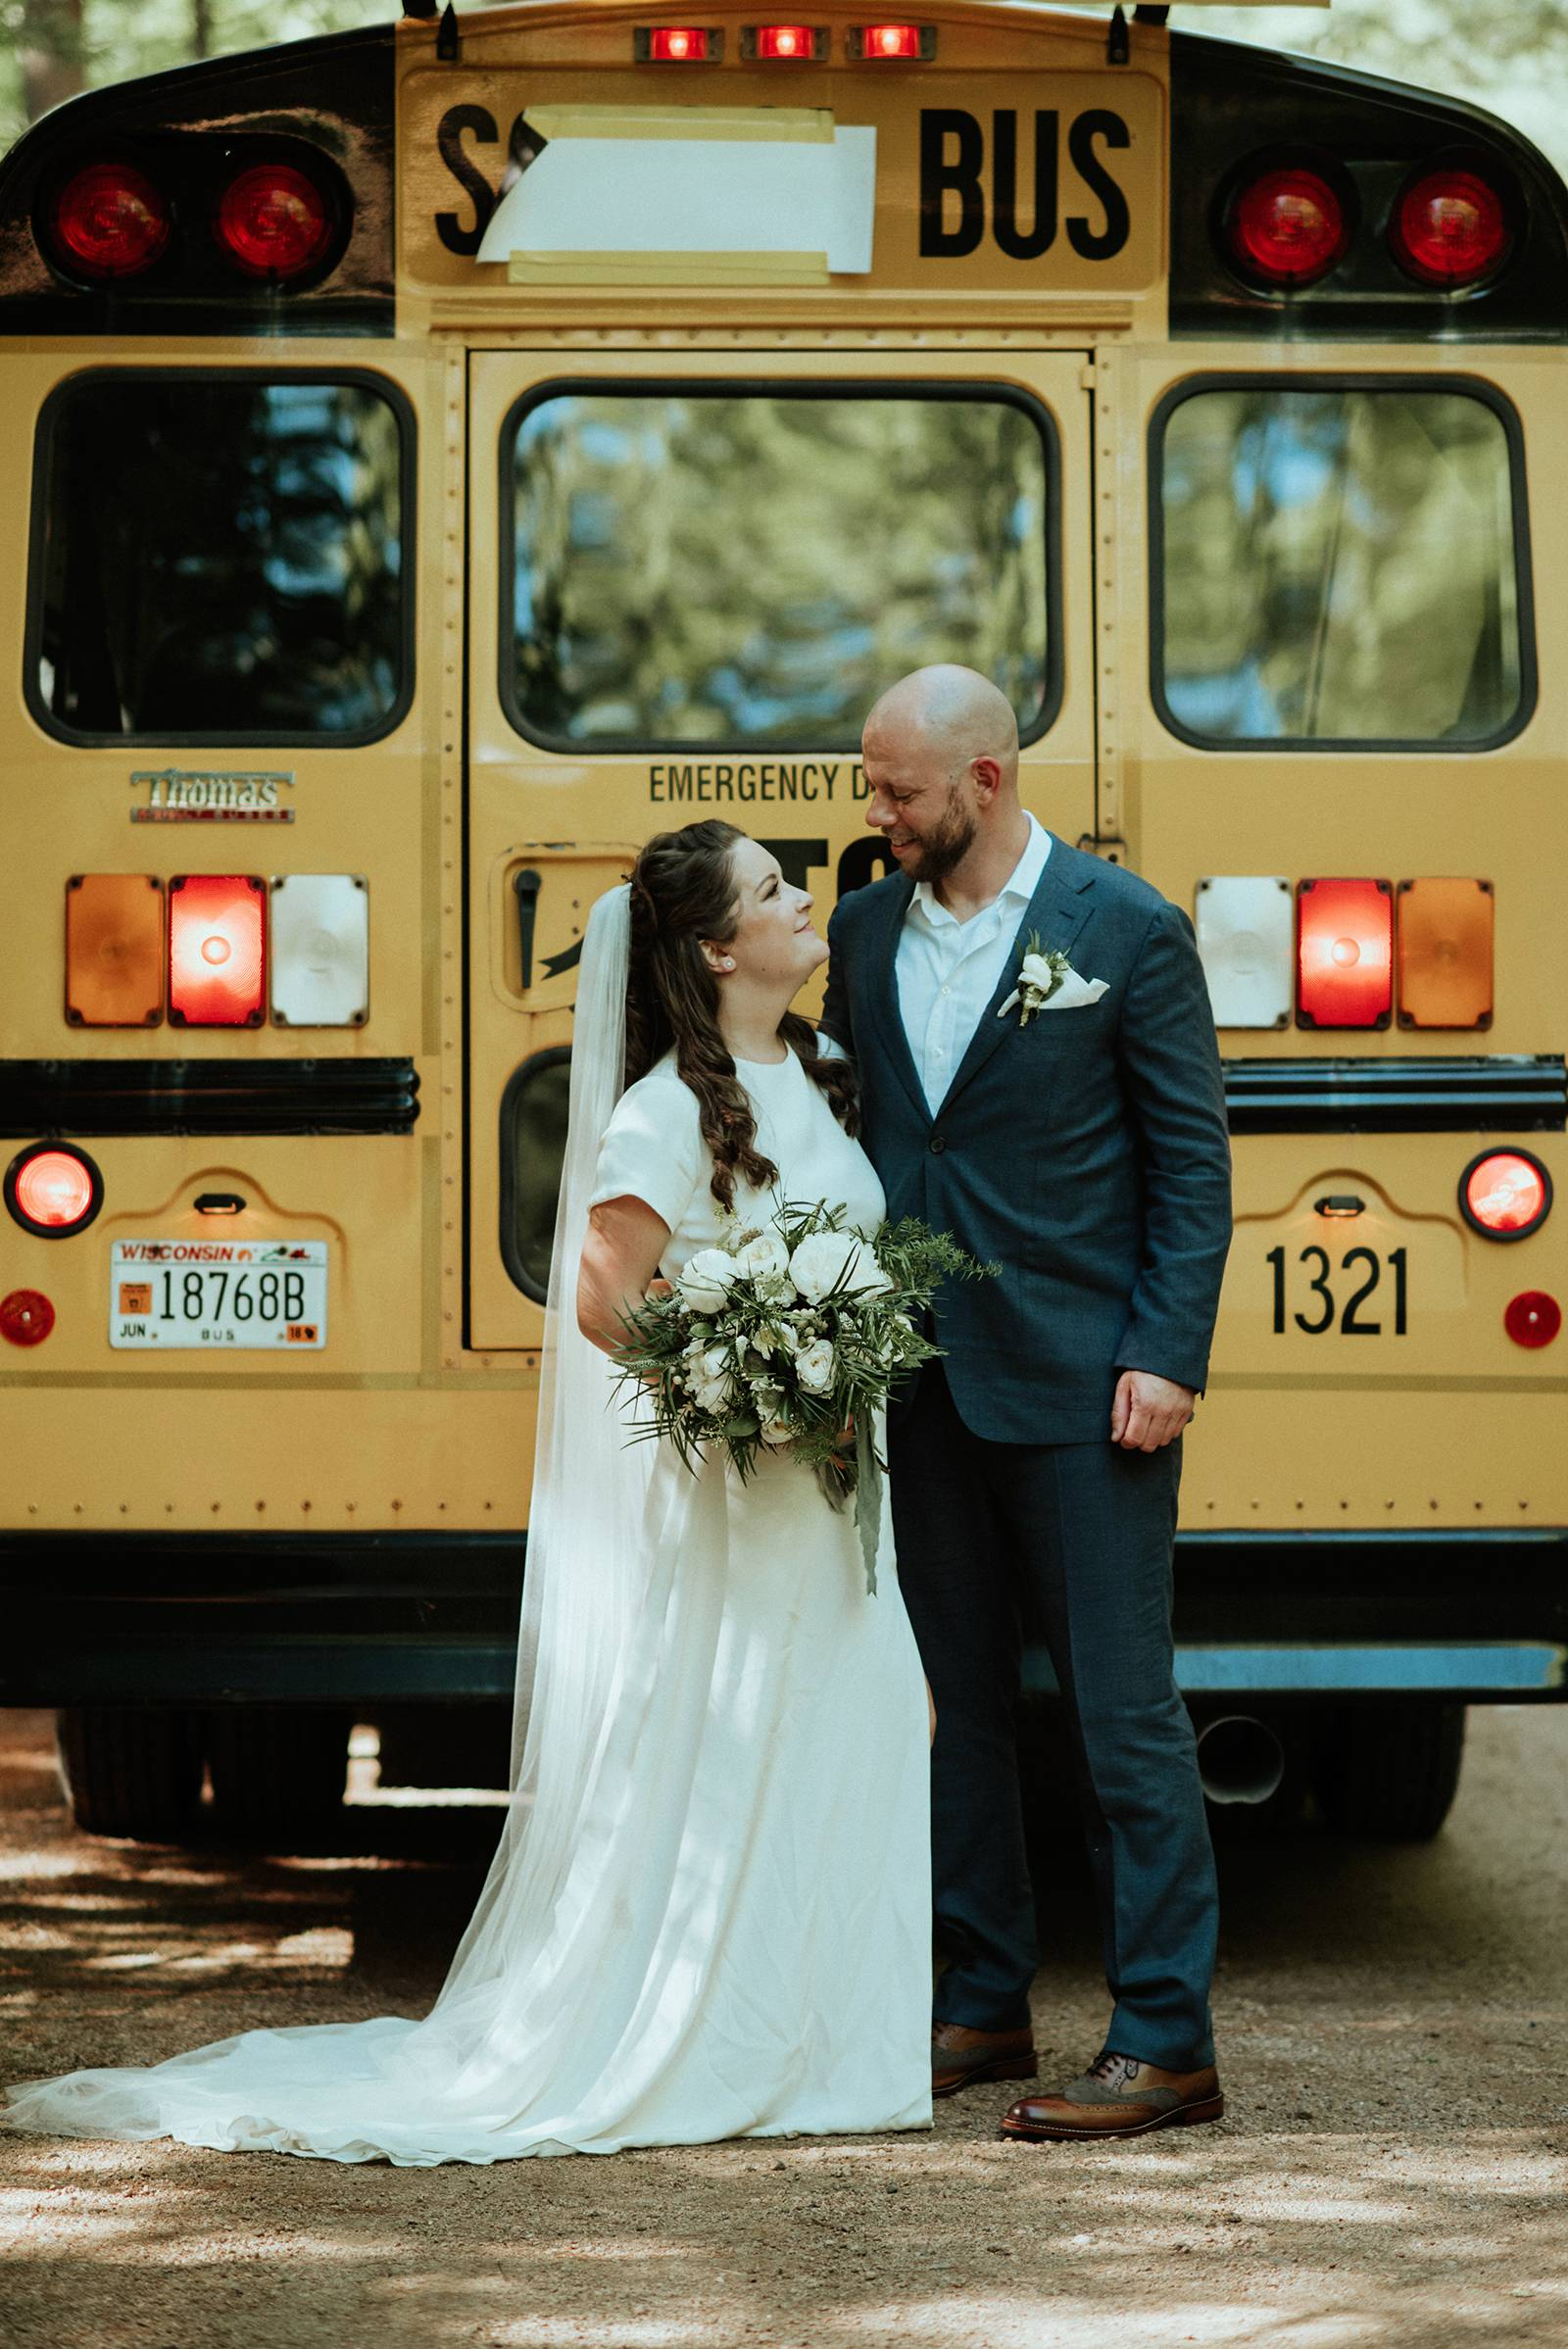 WEDDING DAY TRANSPORTATION ITINERARY FOR YOUR GUESTS